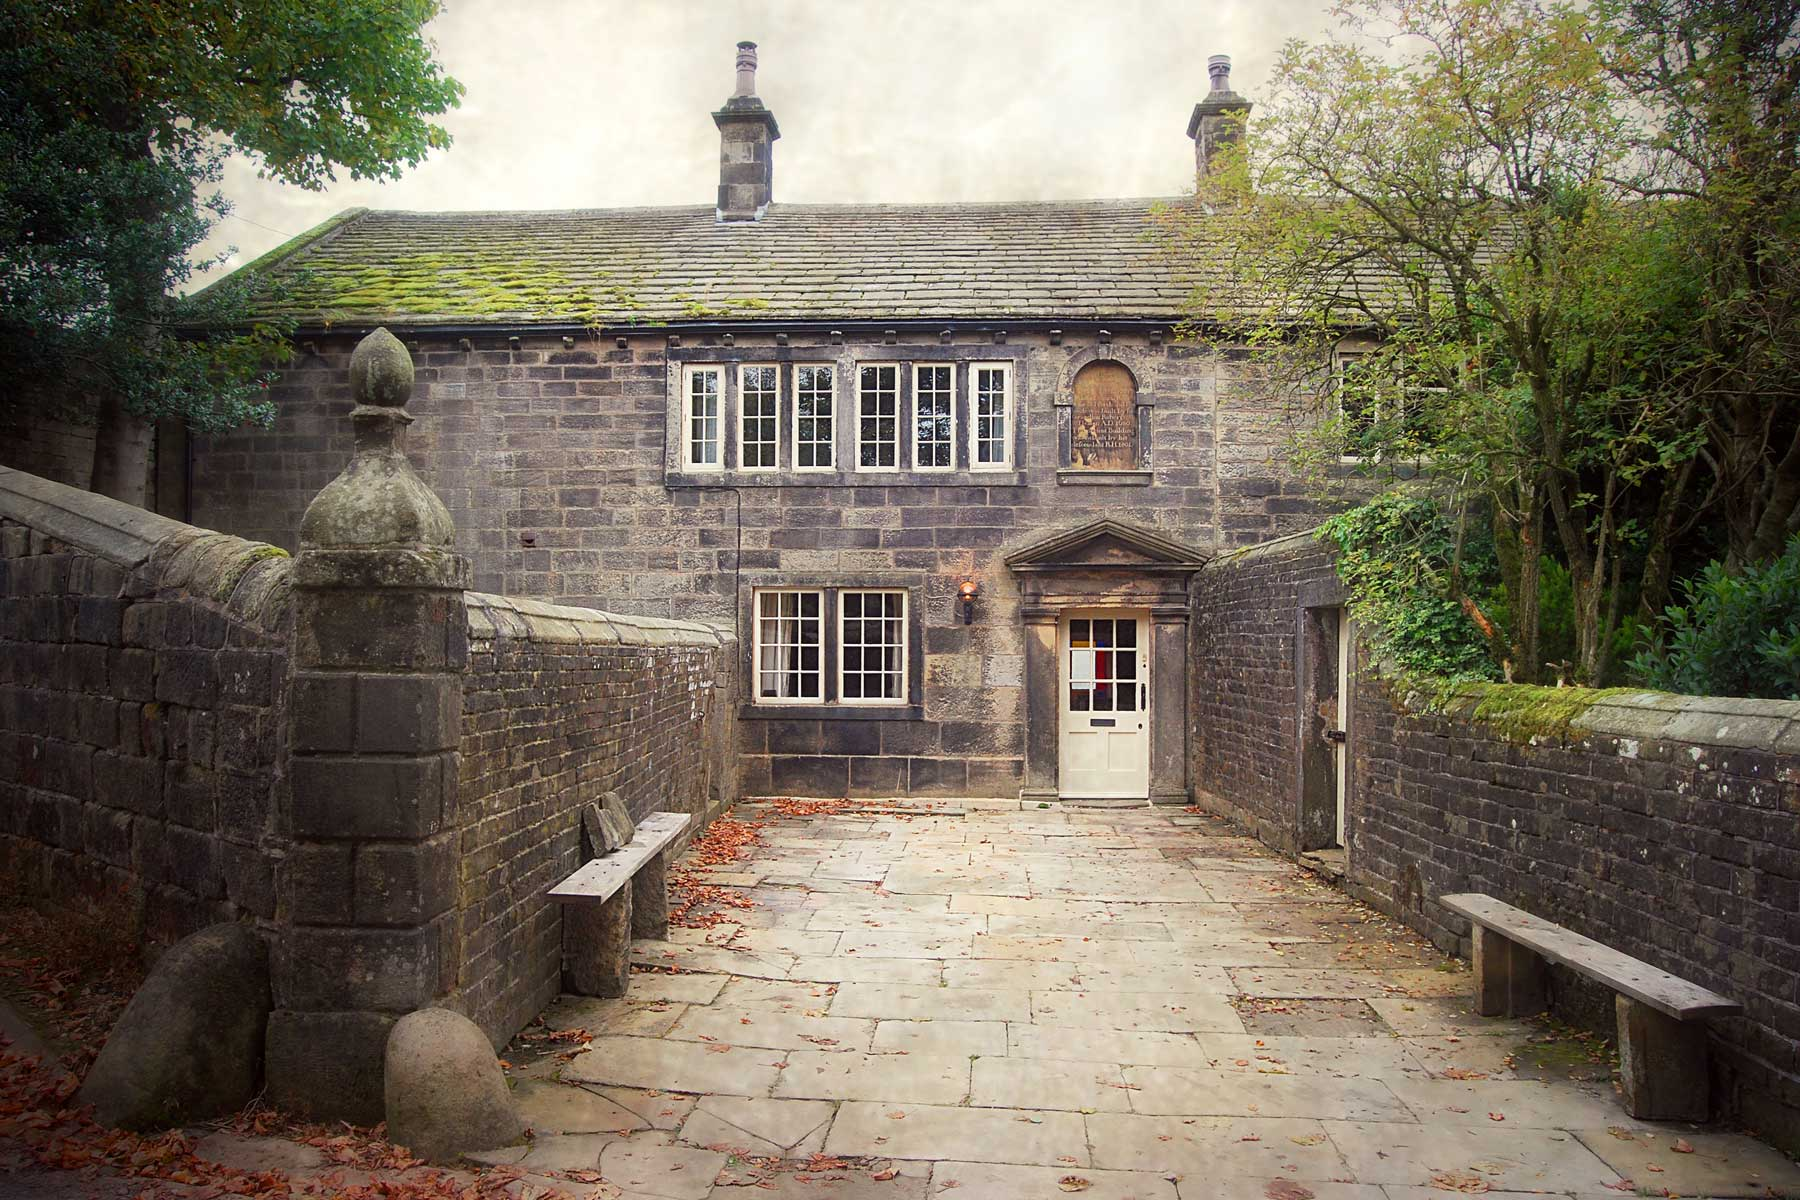 Historic house near Haworth, West Yorkshire, England with many connections with the literary Bronte sisters who lived in the 19th century.